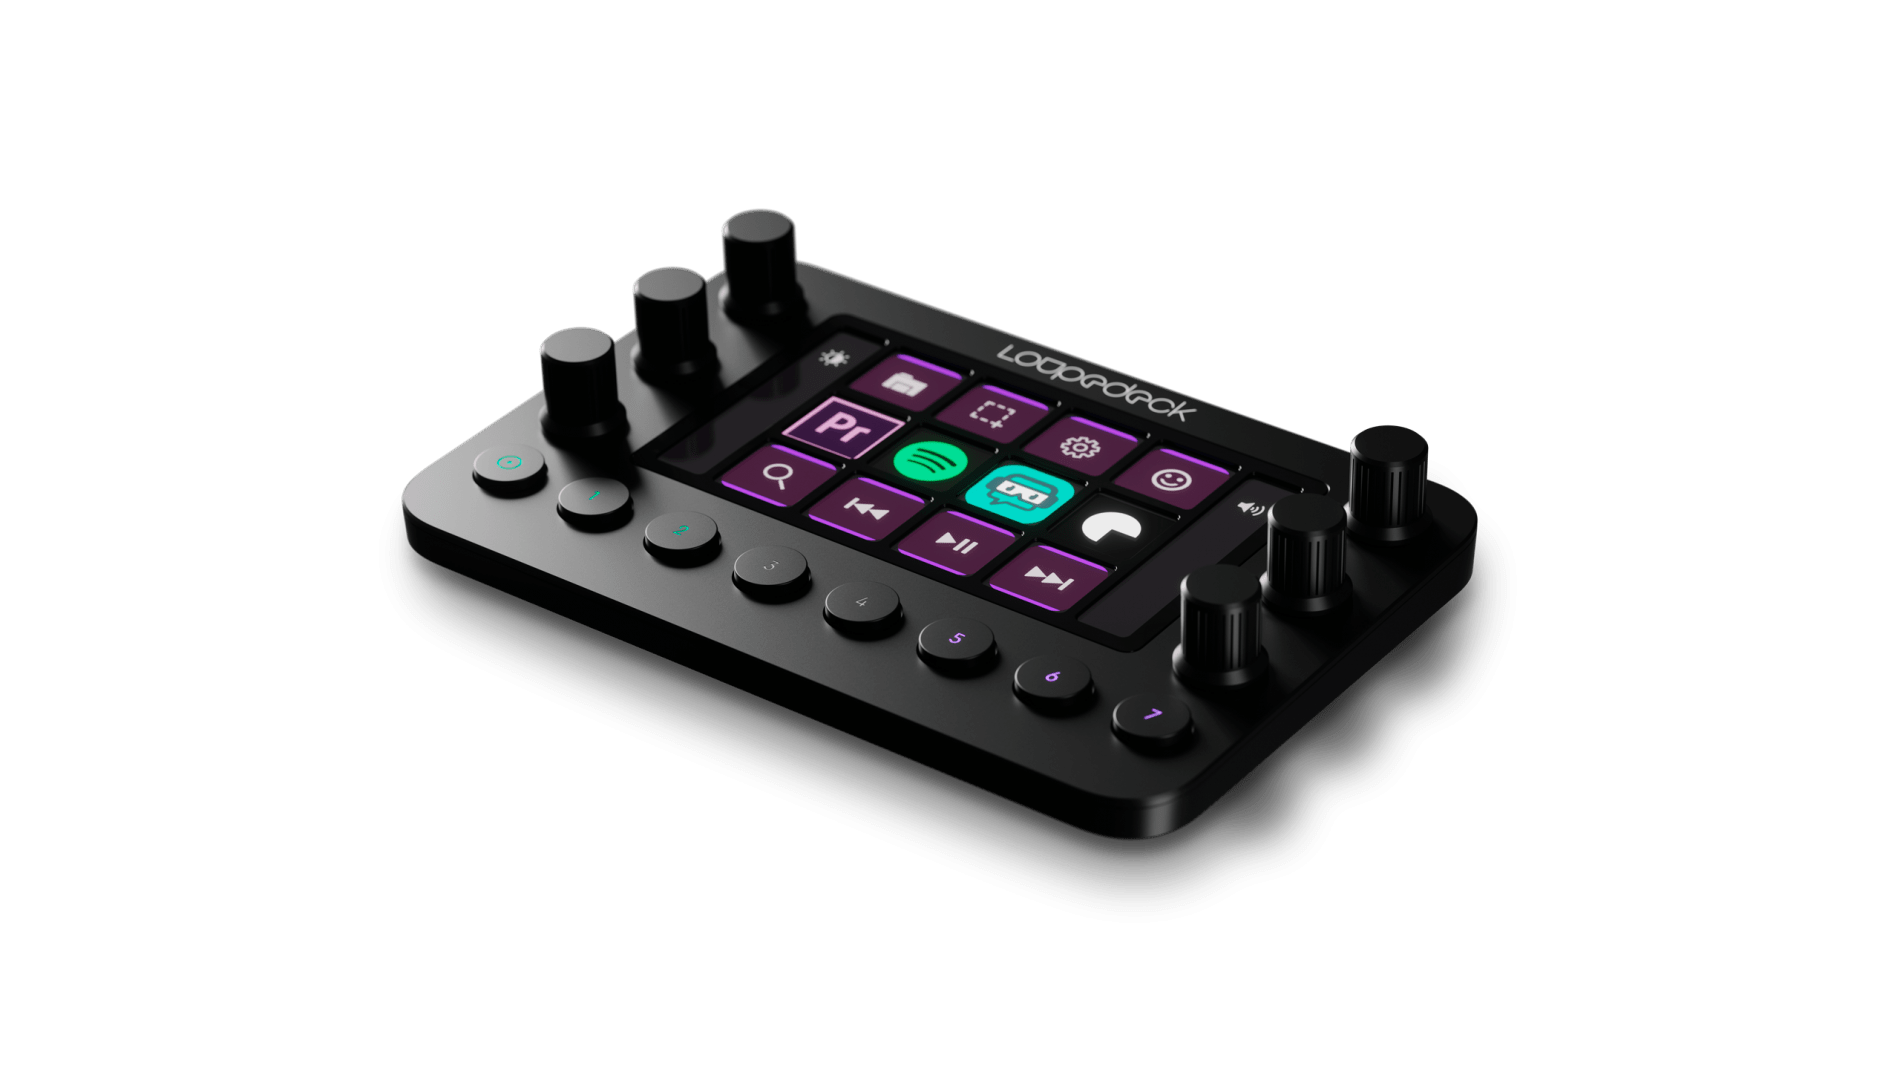 The Loupedeck – A New Way to Edit and Live Stream?